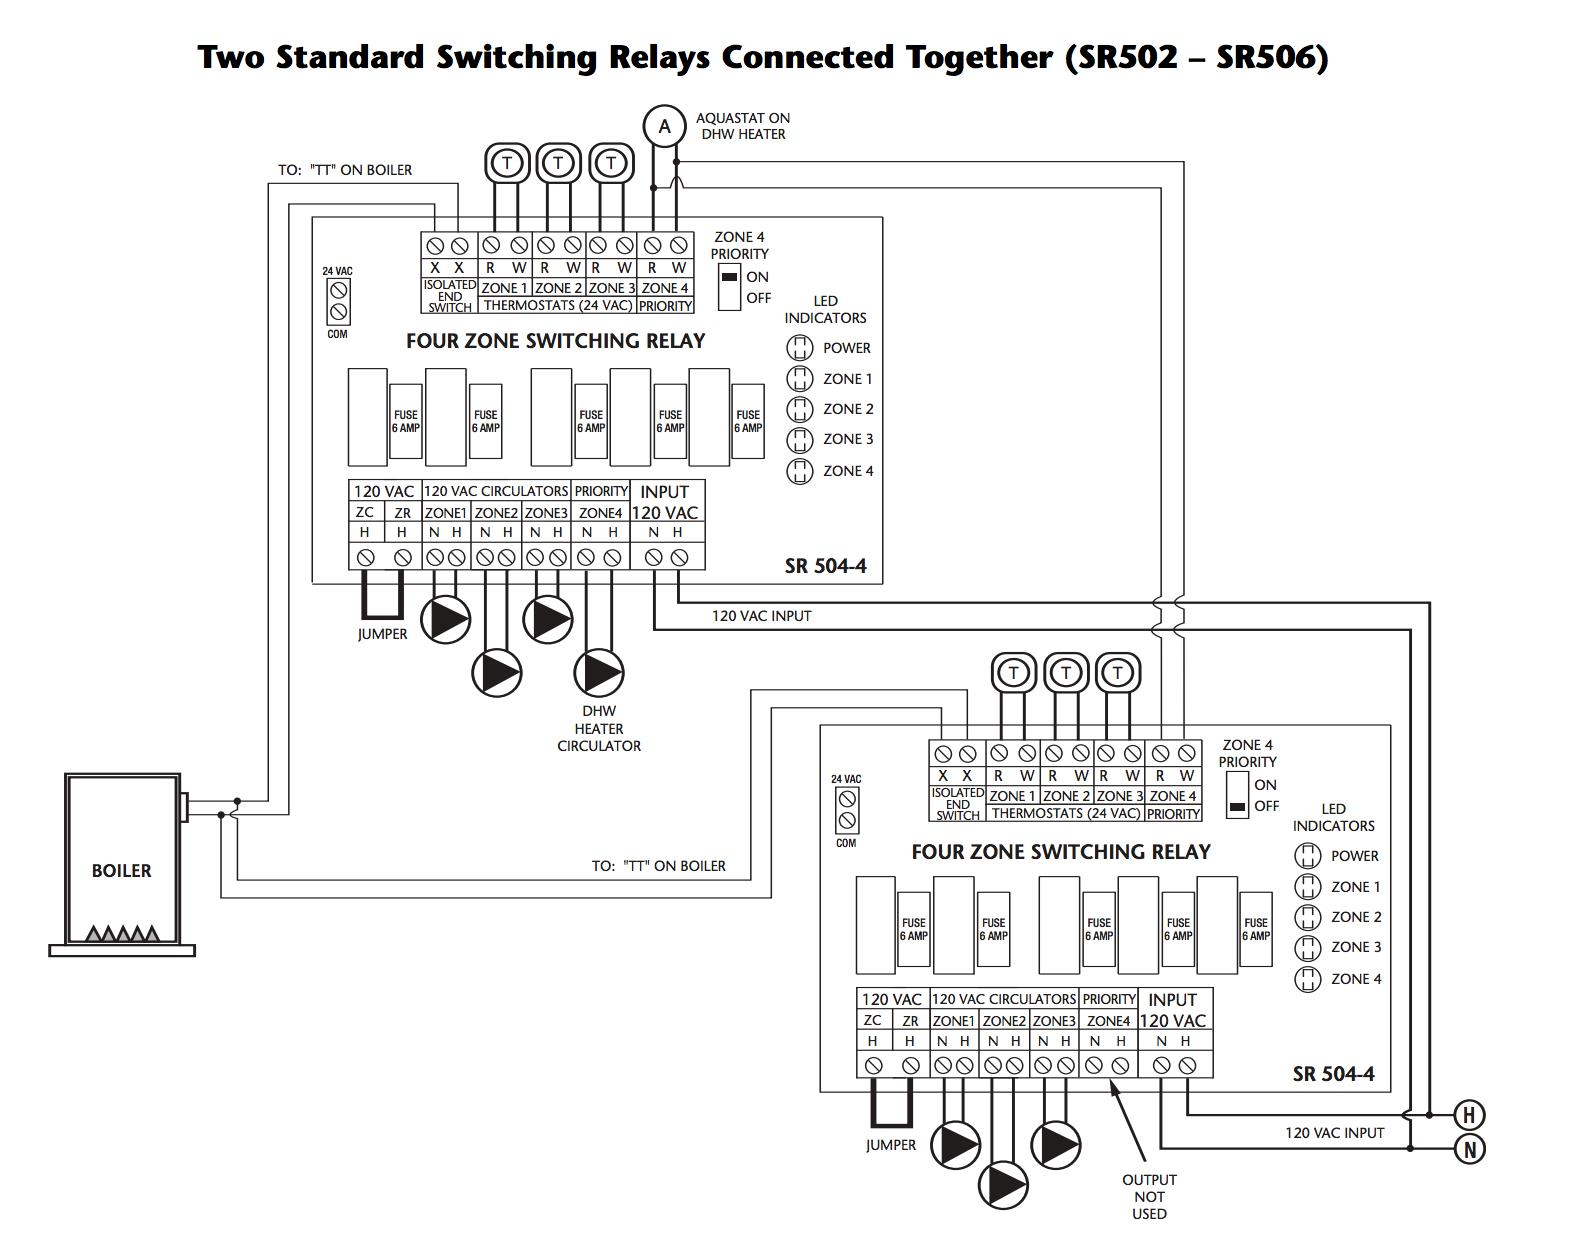 Zone Valve Wiring Installation & Instructions: Guide to ... on honeywell l8148e wiring, honeywell triple aquastat wiring, taco sr501 wiring-diagram, taco relay external, taco 501 switching relay, taco wiring-diagram 504, taco sr502 wiring-diagram, taco 571 wiring-diagram, an aquastat wiring, slant fin wiring, taco sr501 4,